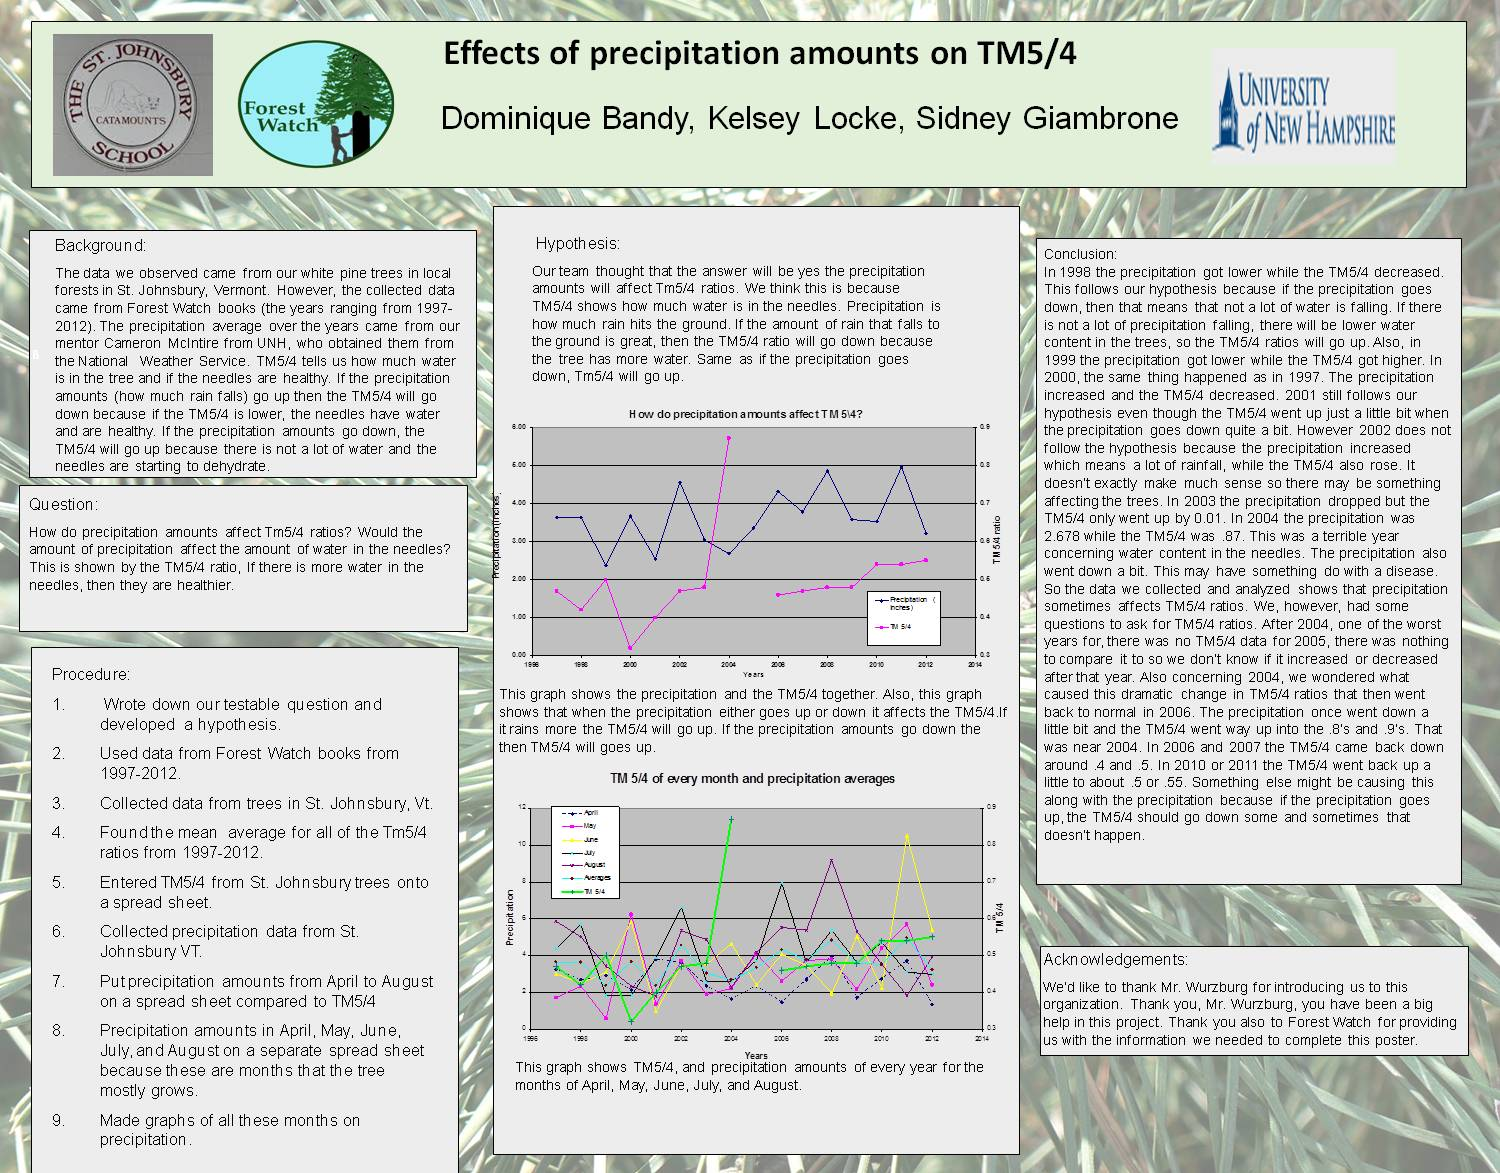 Effects Of Precipitation Amounts On Tm5/4 by obwurzburg